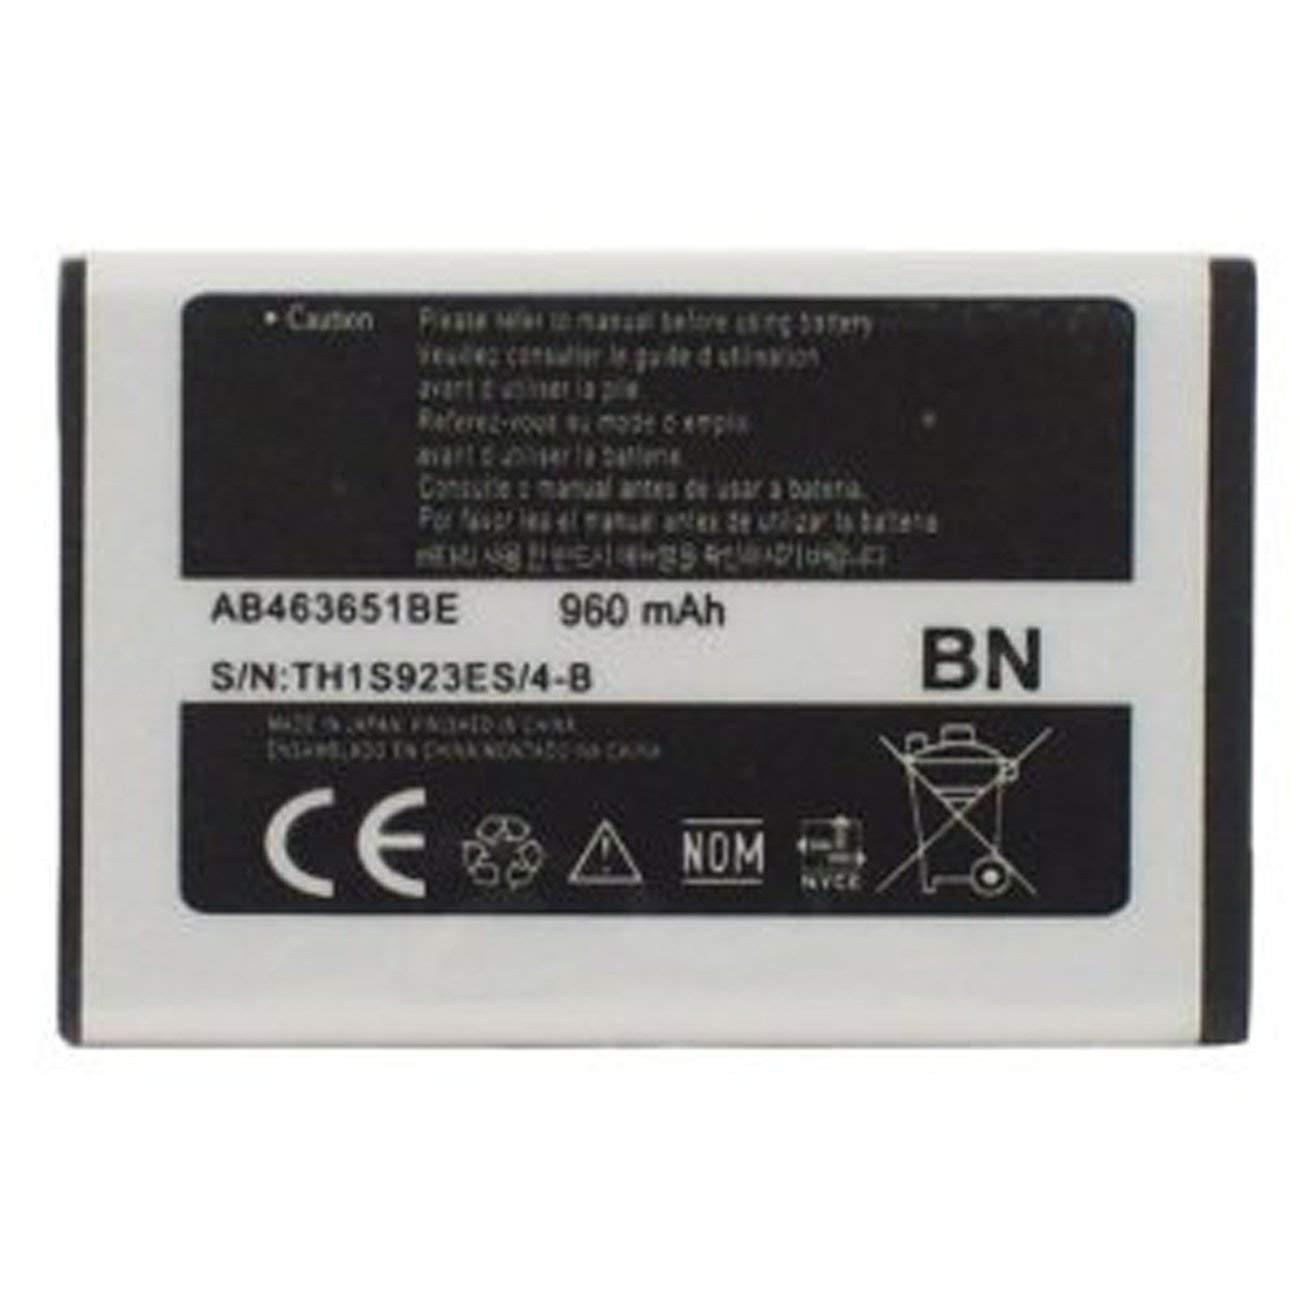 GROSIR BATTERY BATERAI BATRE SAMSUNG S3650 CORBY TOUCH SCREEN ORIGINAL OEM